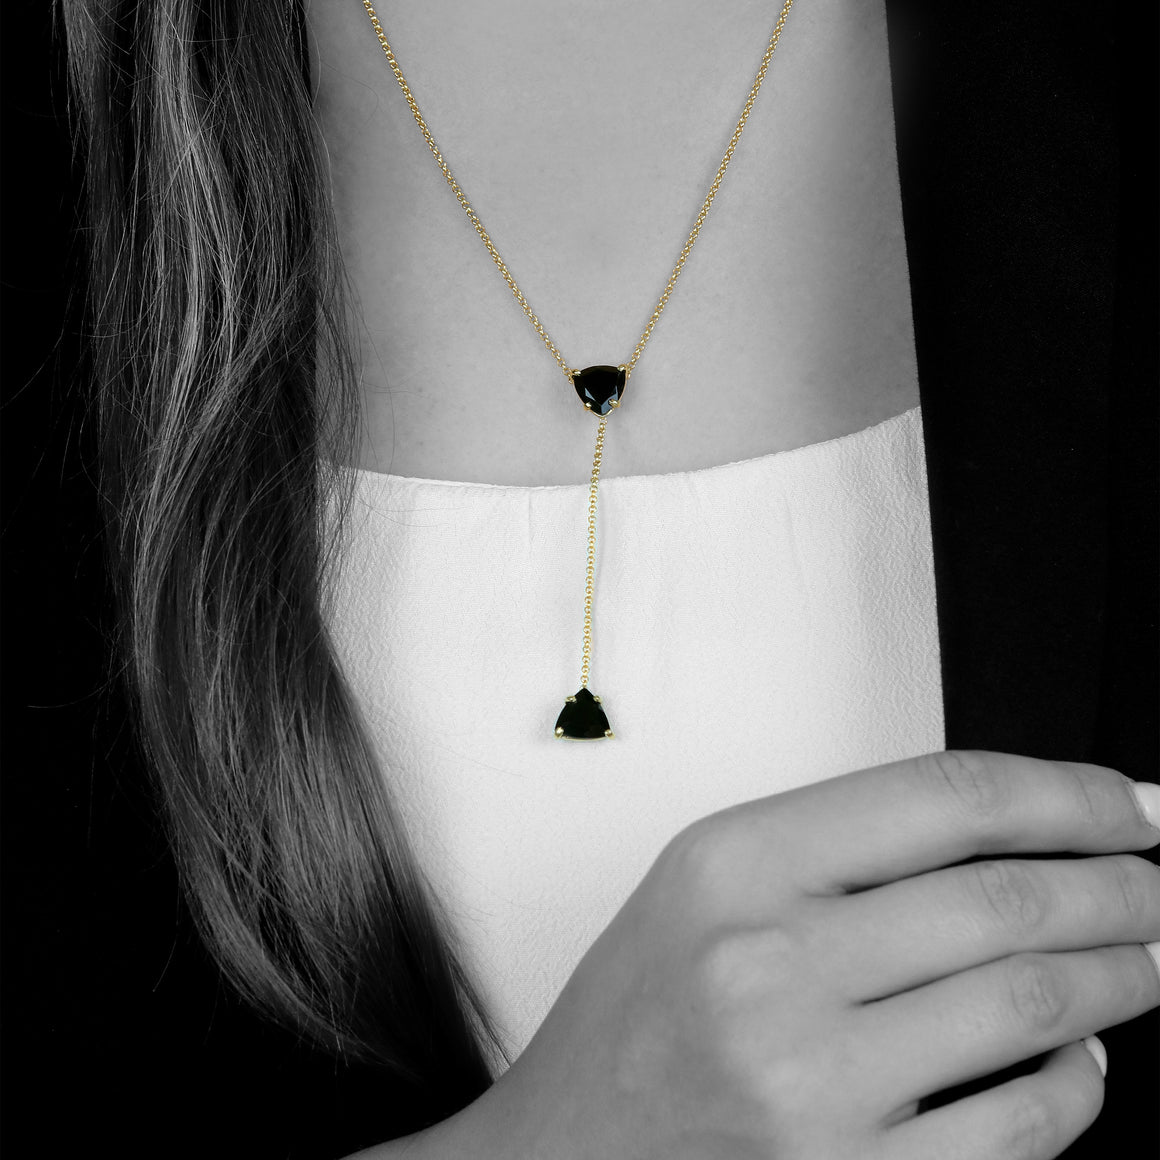 Black onyx necklace,drop necklaces,lariat necklaces,Y necklaces,gold necklace,gemstone necklace